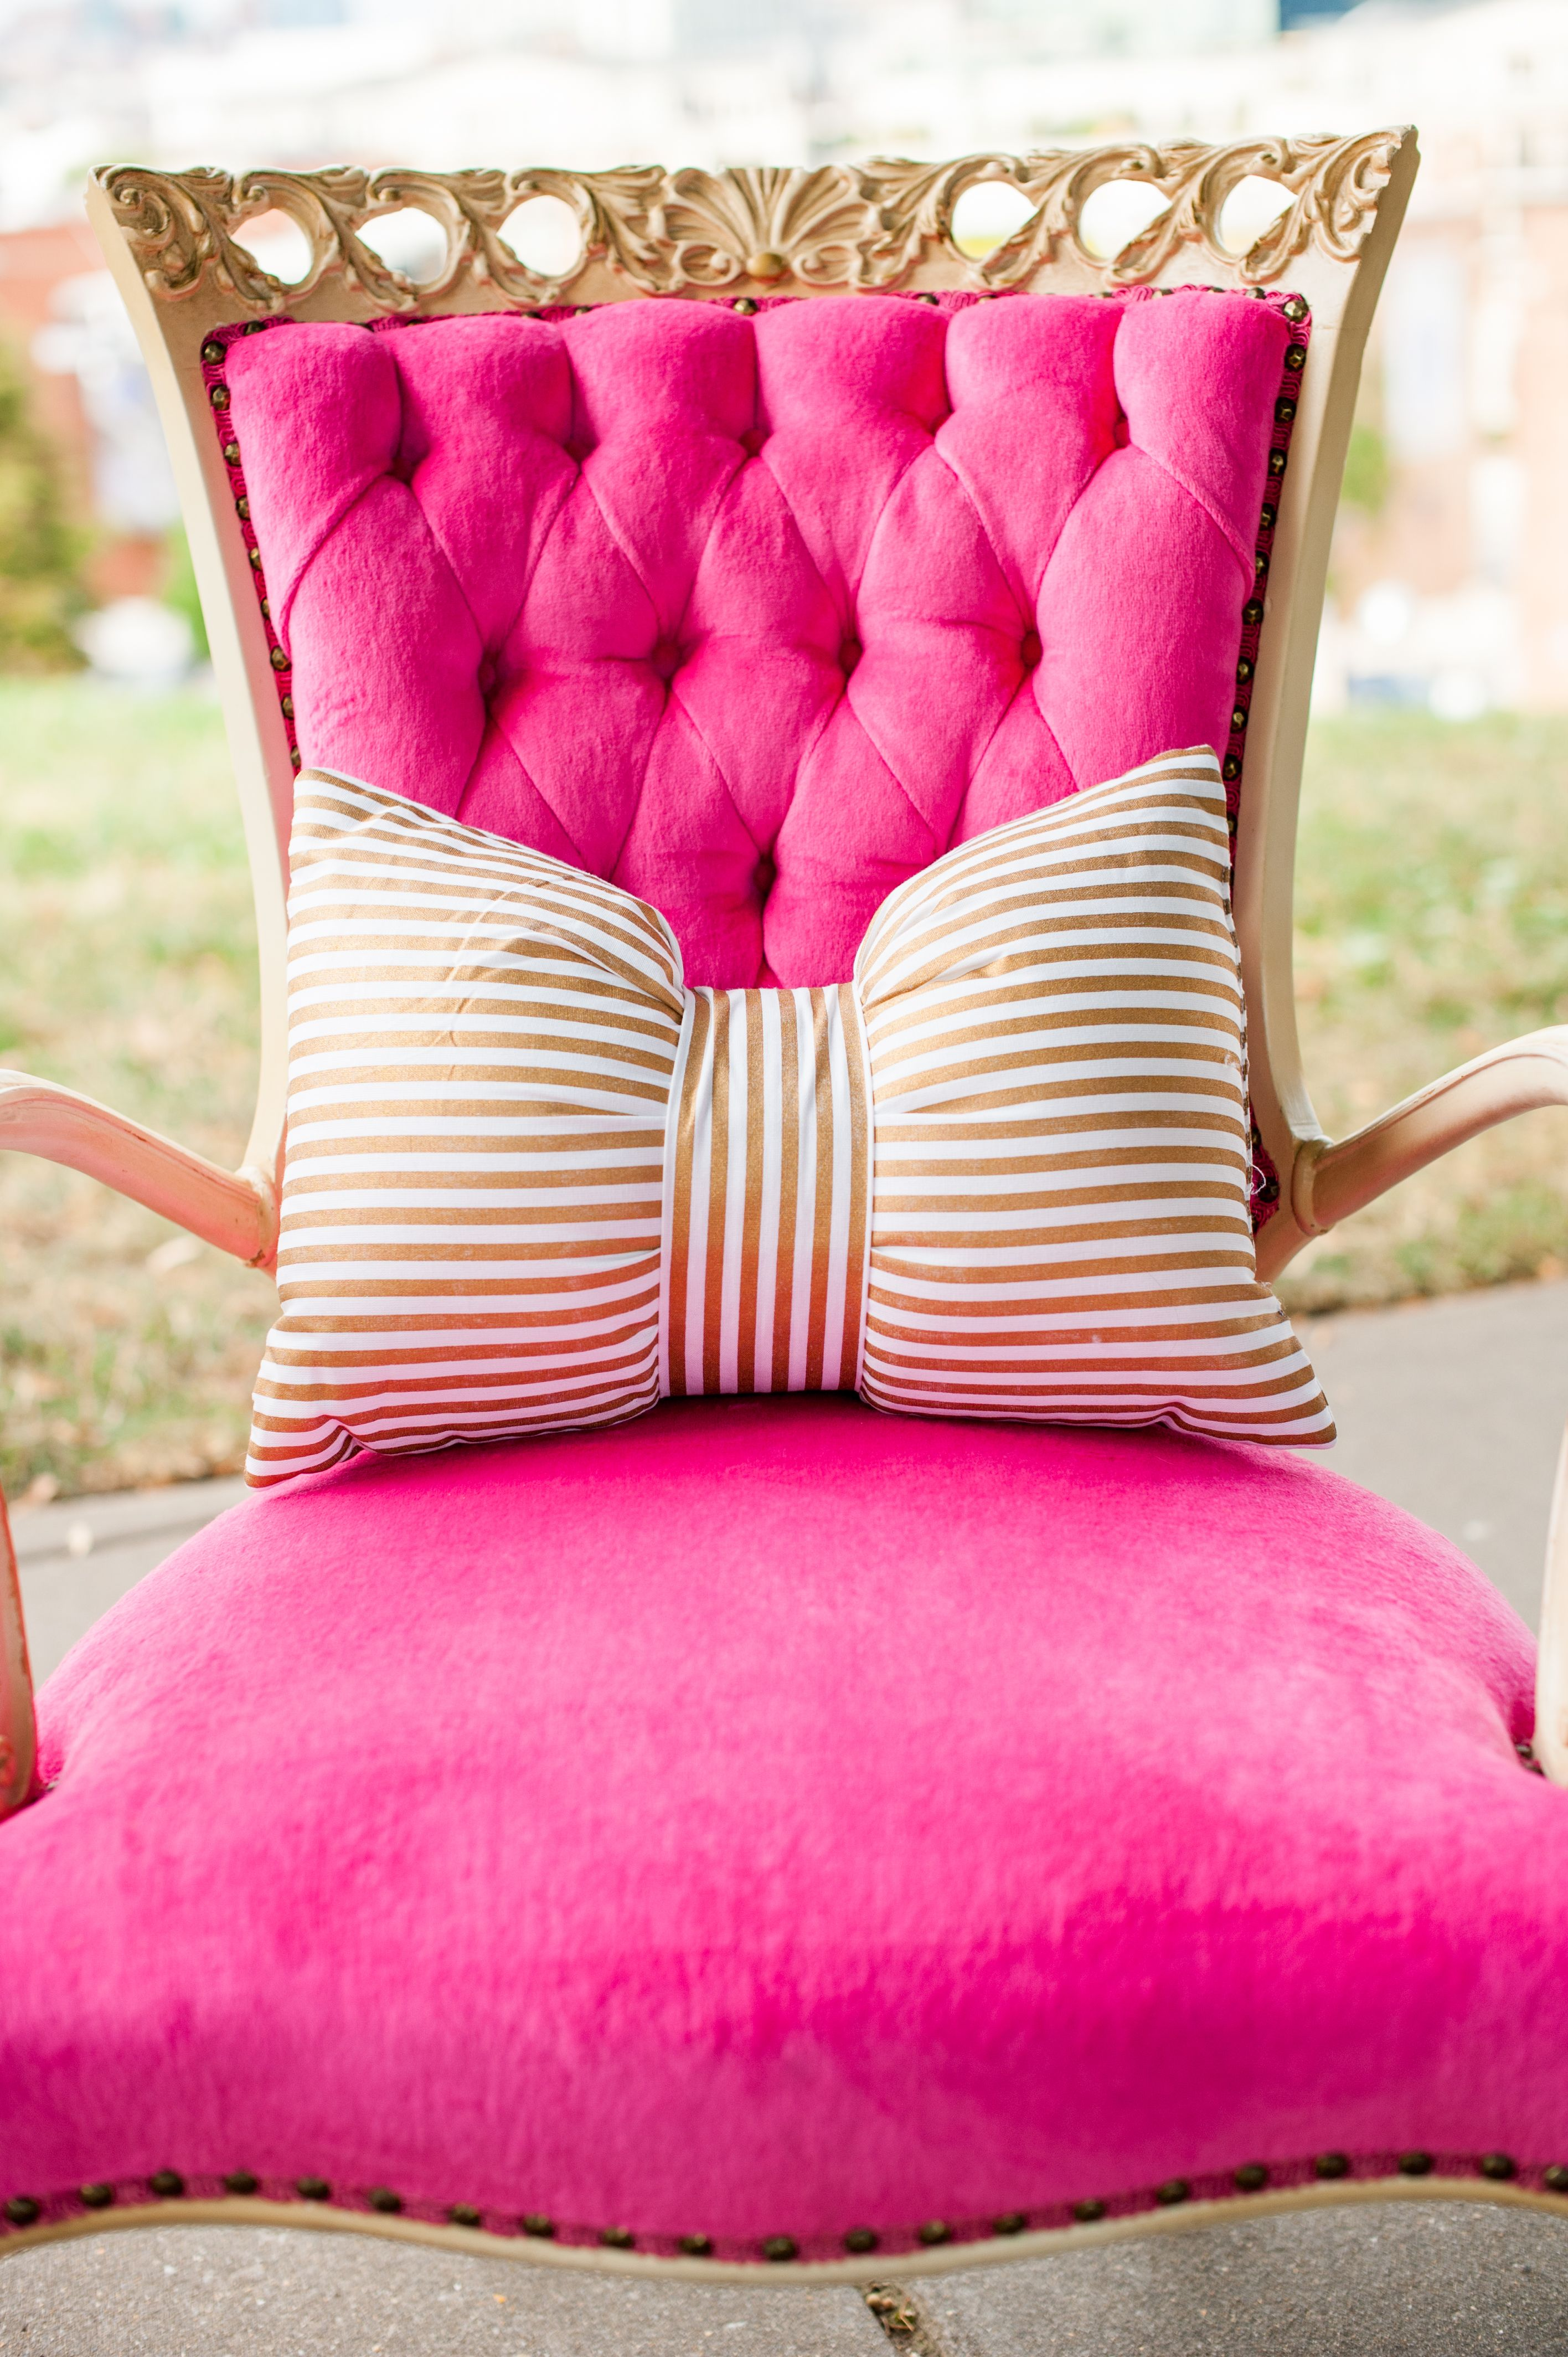 Chair Cover Rental Baltimore Rubber Foot Pads For Chairs Kate Spade Inspired Engagement Session In Maryland Rentals White Glove